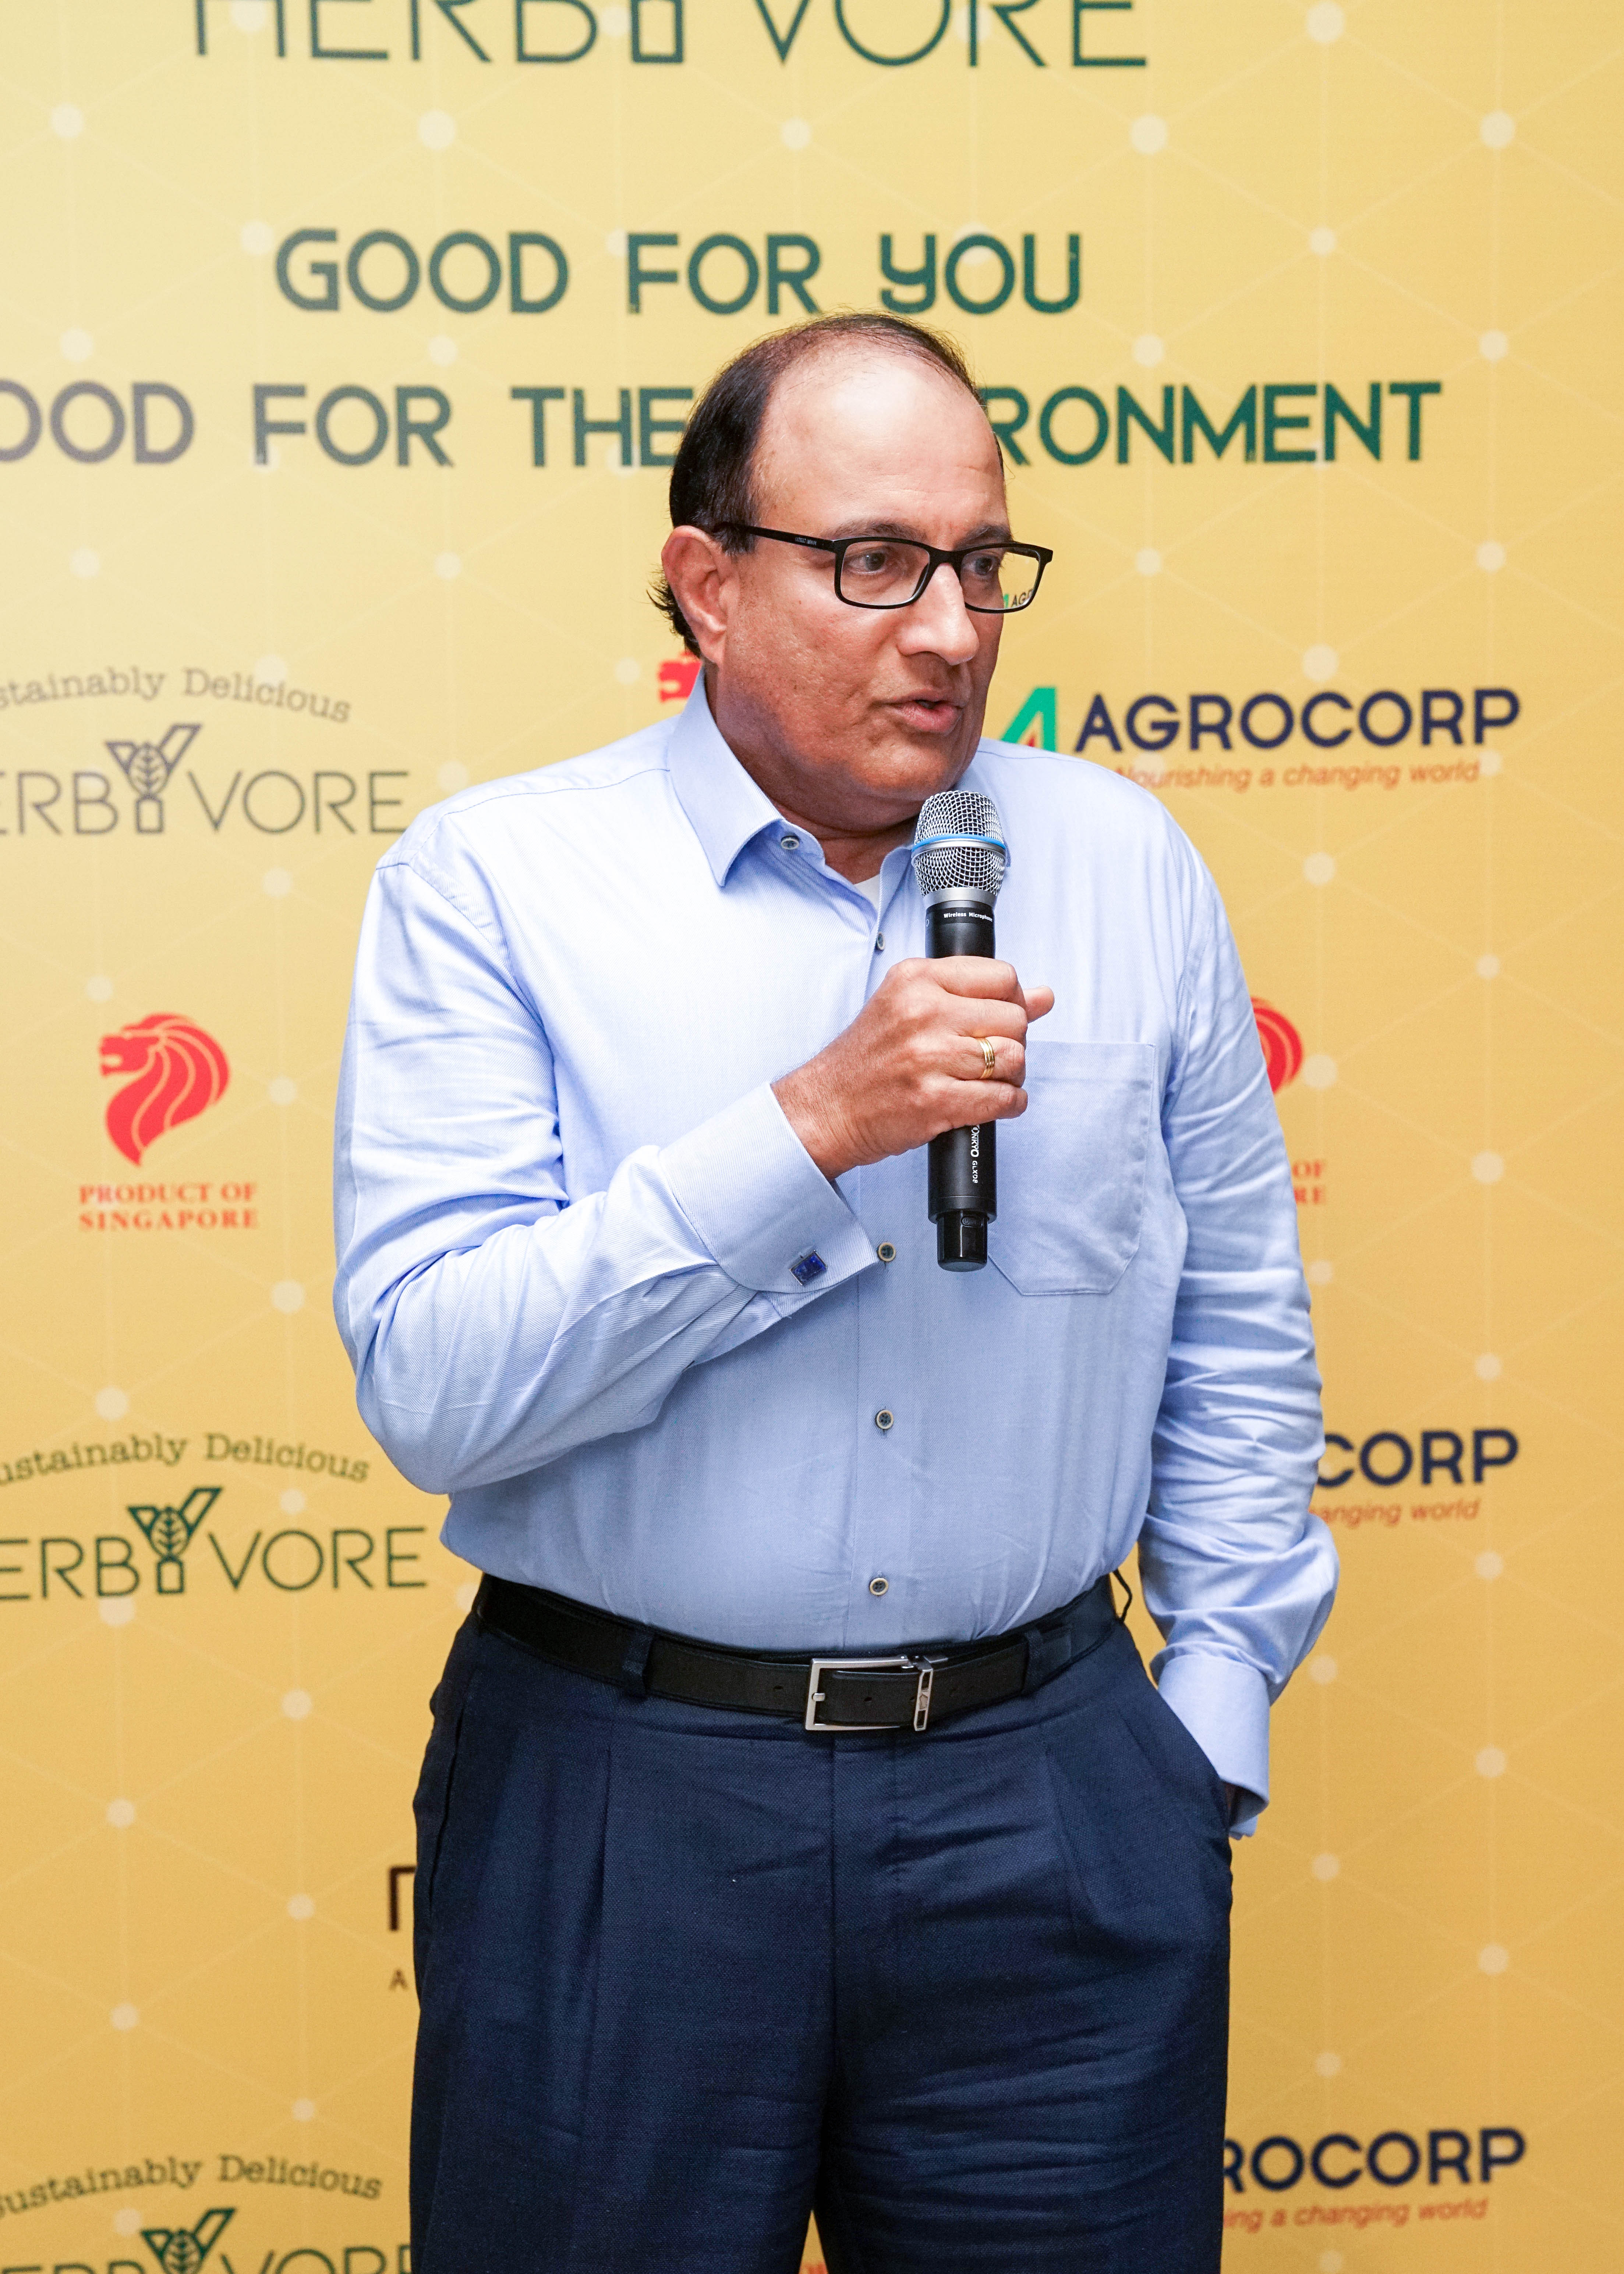 the Minister of Communication and Information, Mr S Iswaran was present as the special guest. Photo courtesy: Agrocorp